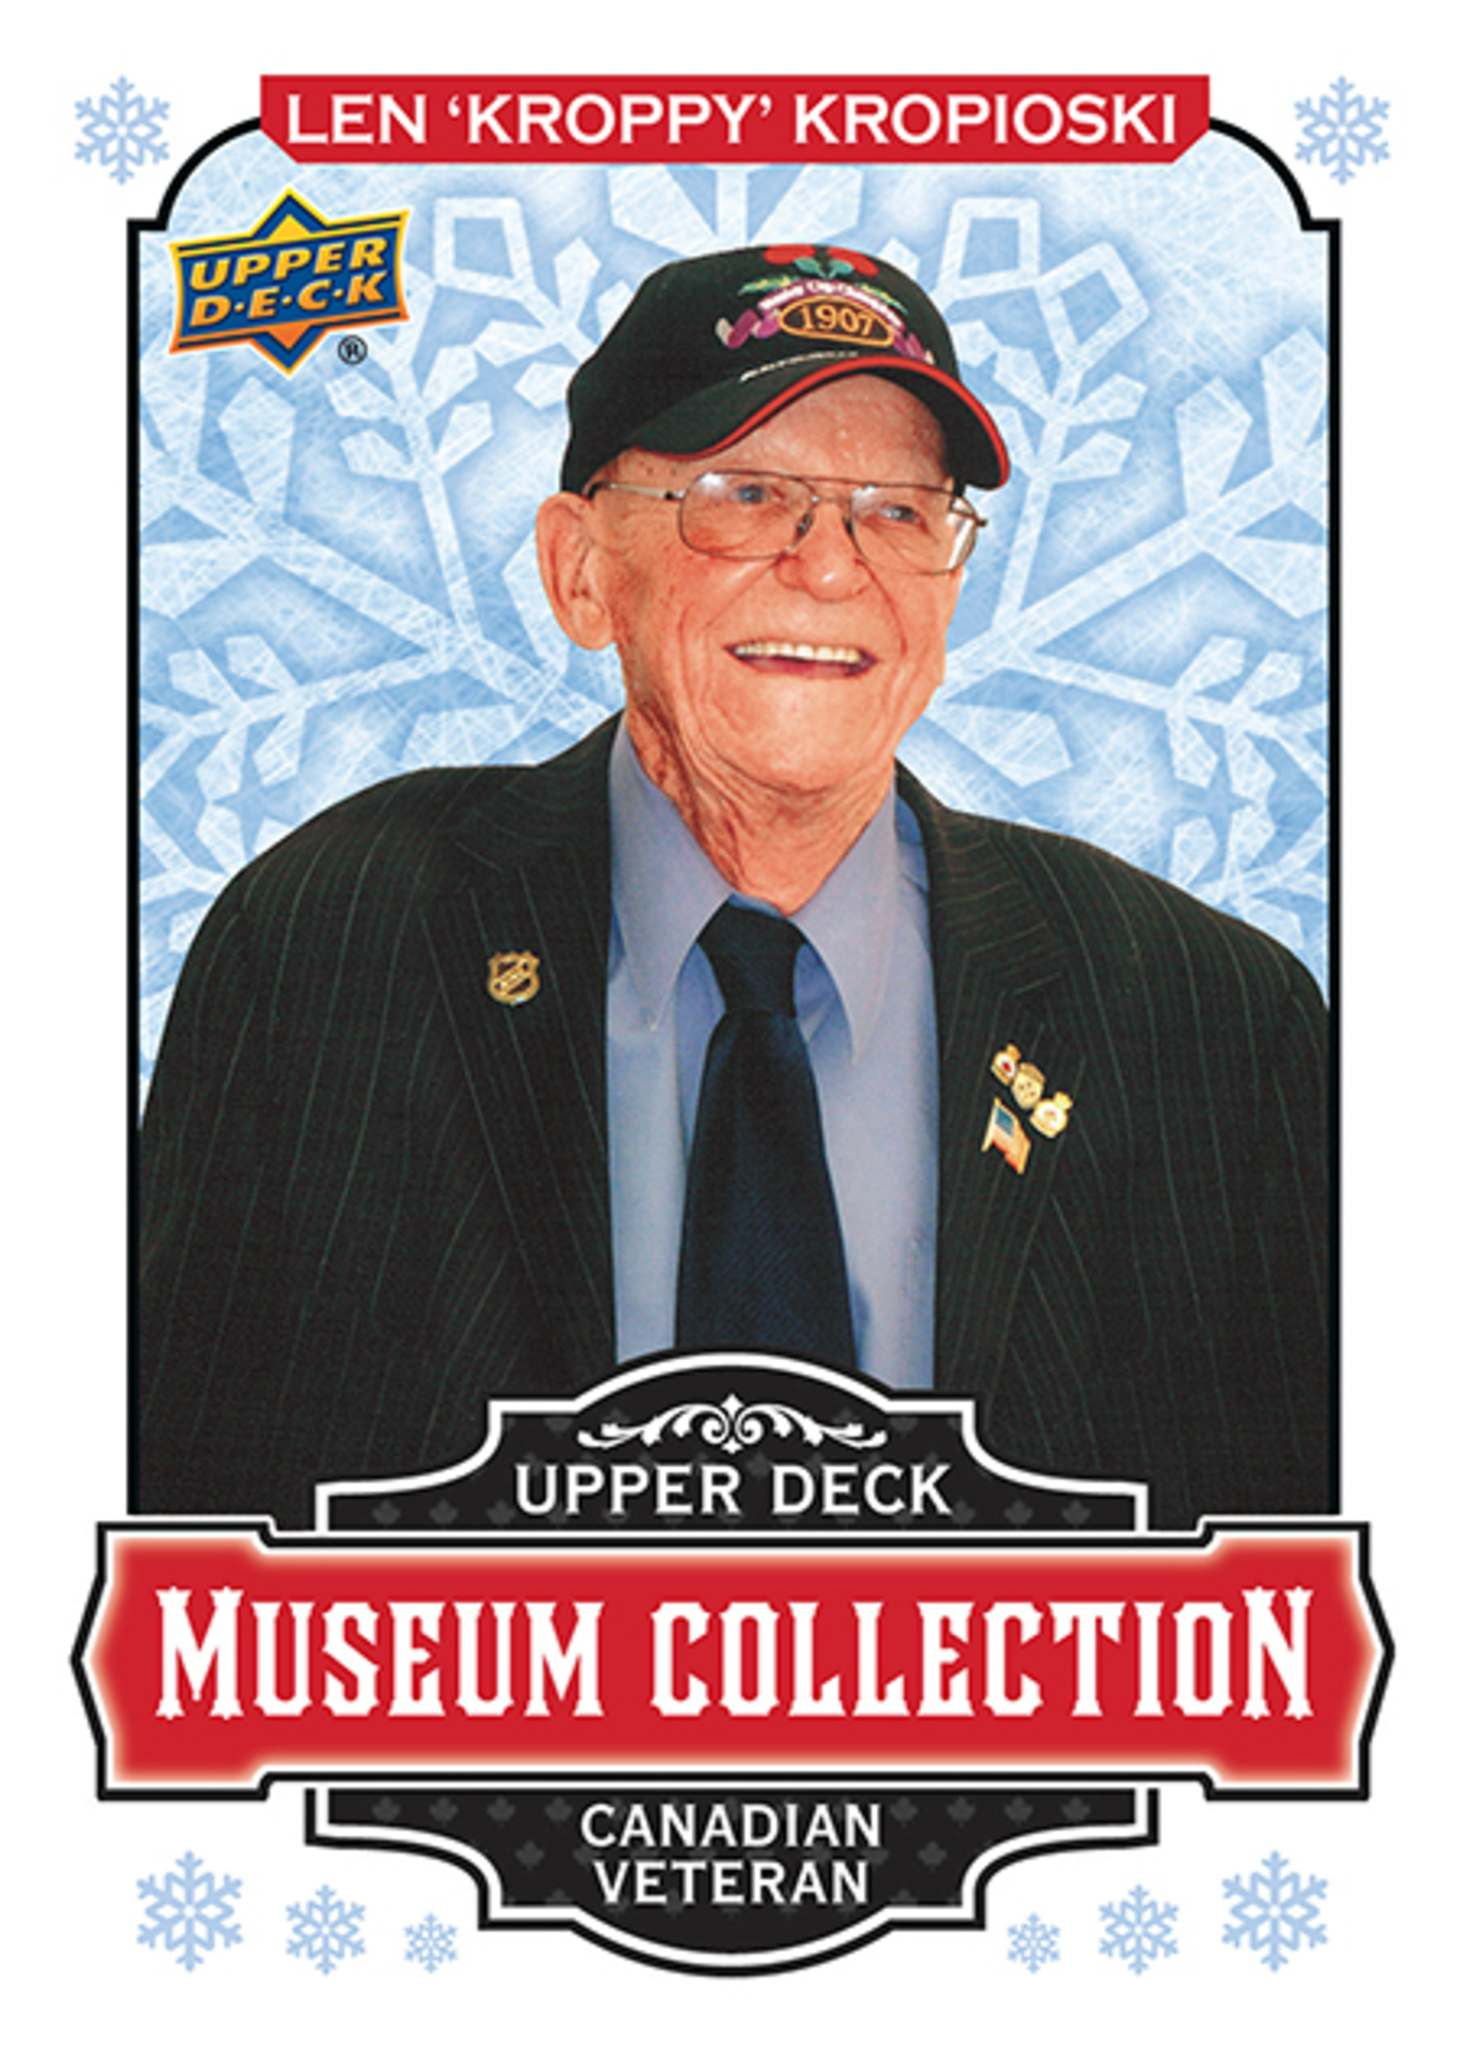 Len Kropioski's hockey card is part of Upper Deck's Museum Collection series honouring one Canadian veteran for Remembrance Day and one American for Veterans Day in the United States. (Upper Deck)</p></p>